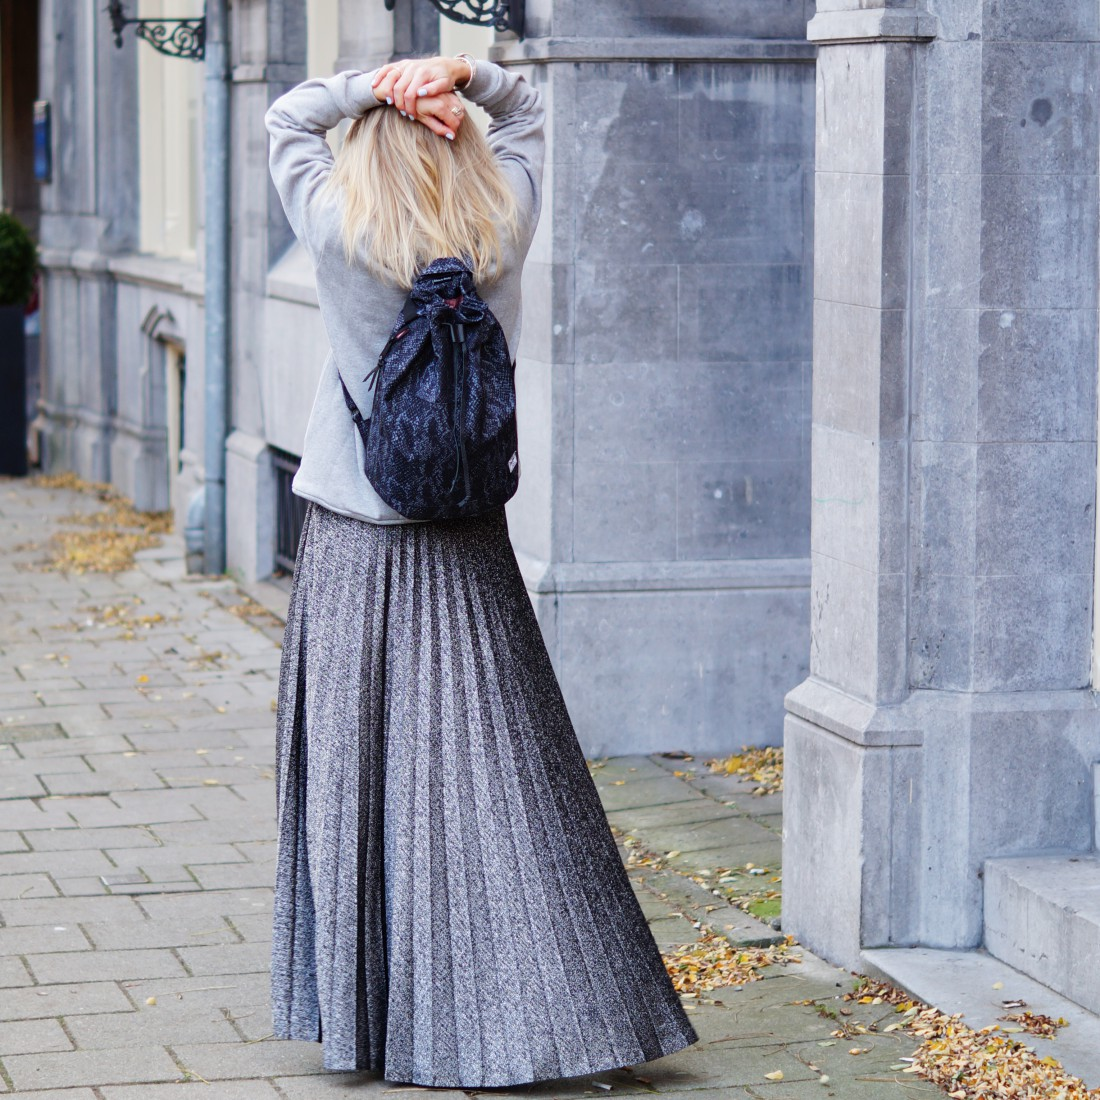 Bag at You - Fashion blog - Silver skirt and Herschel Backpack